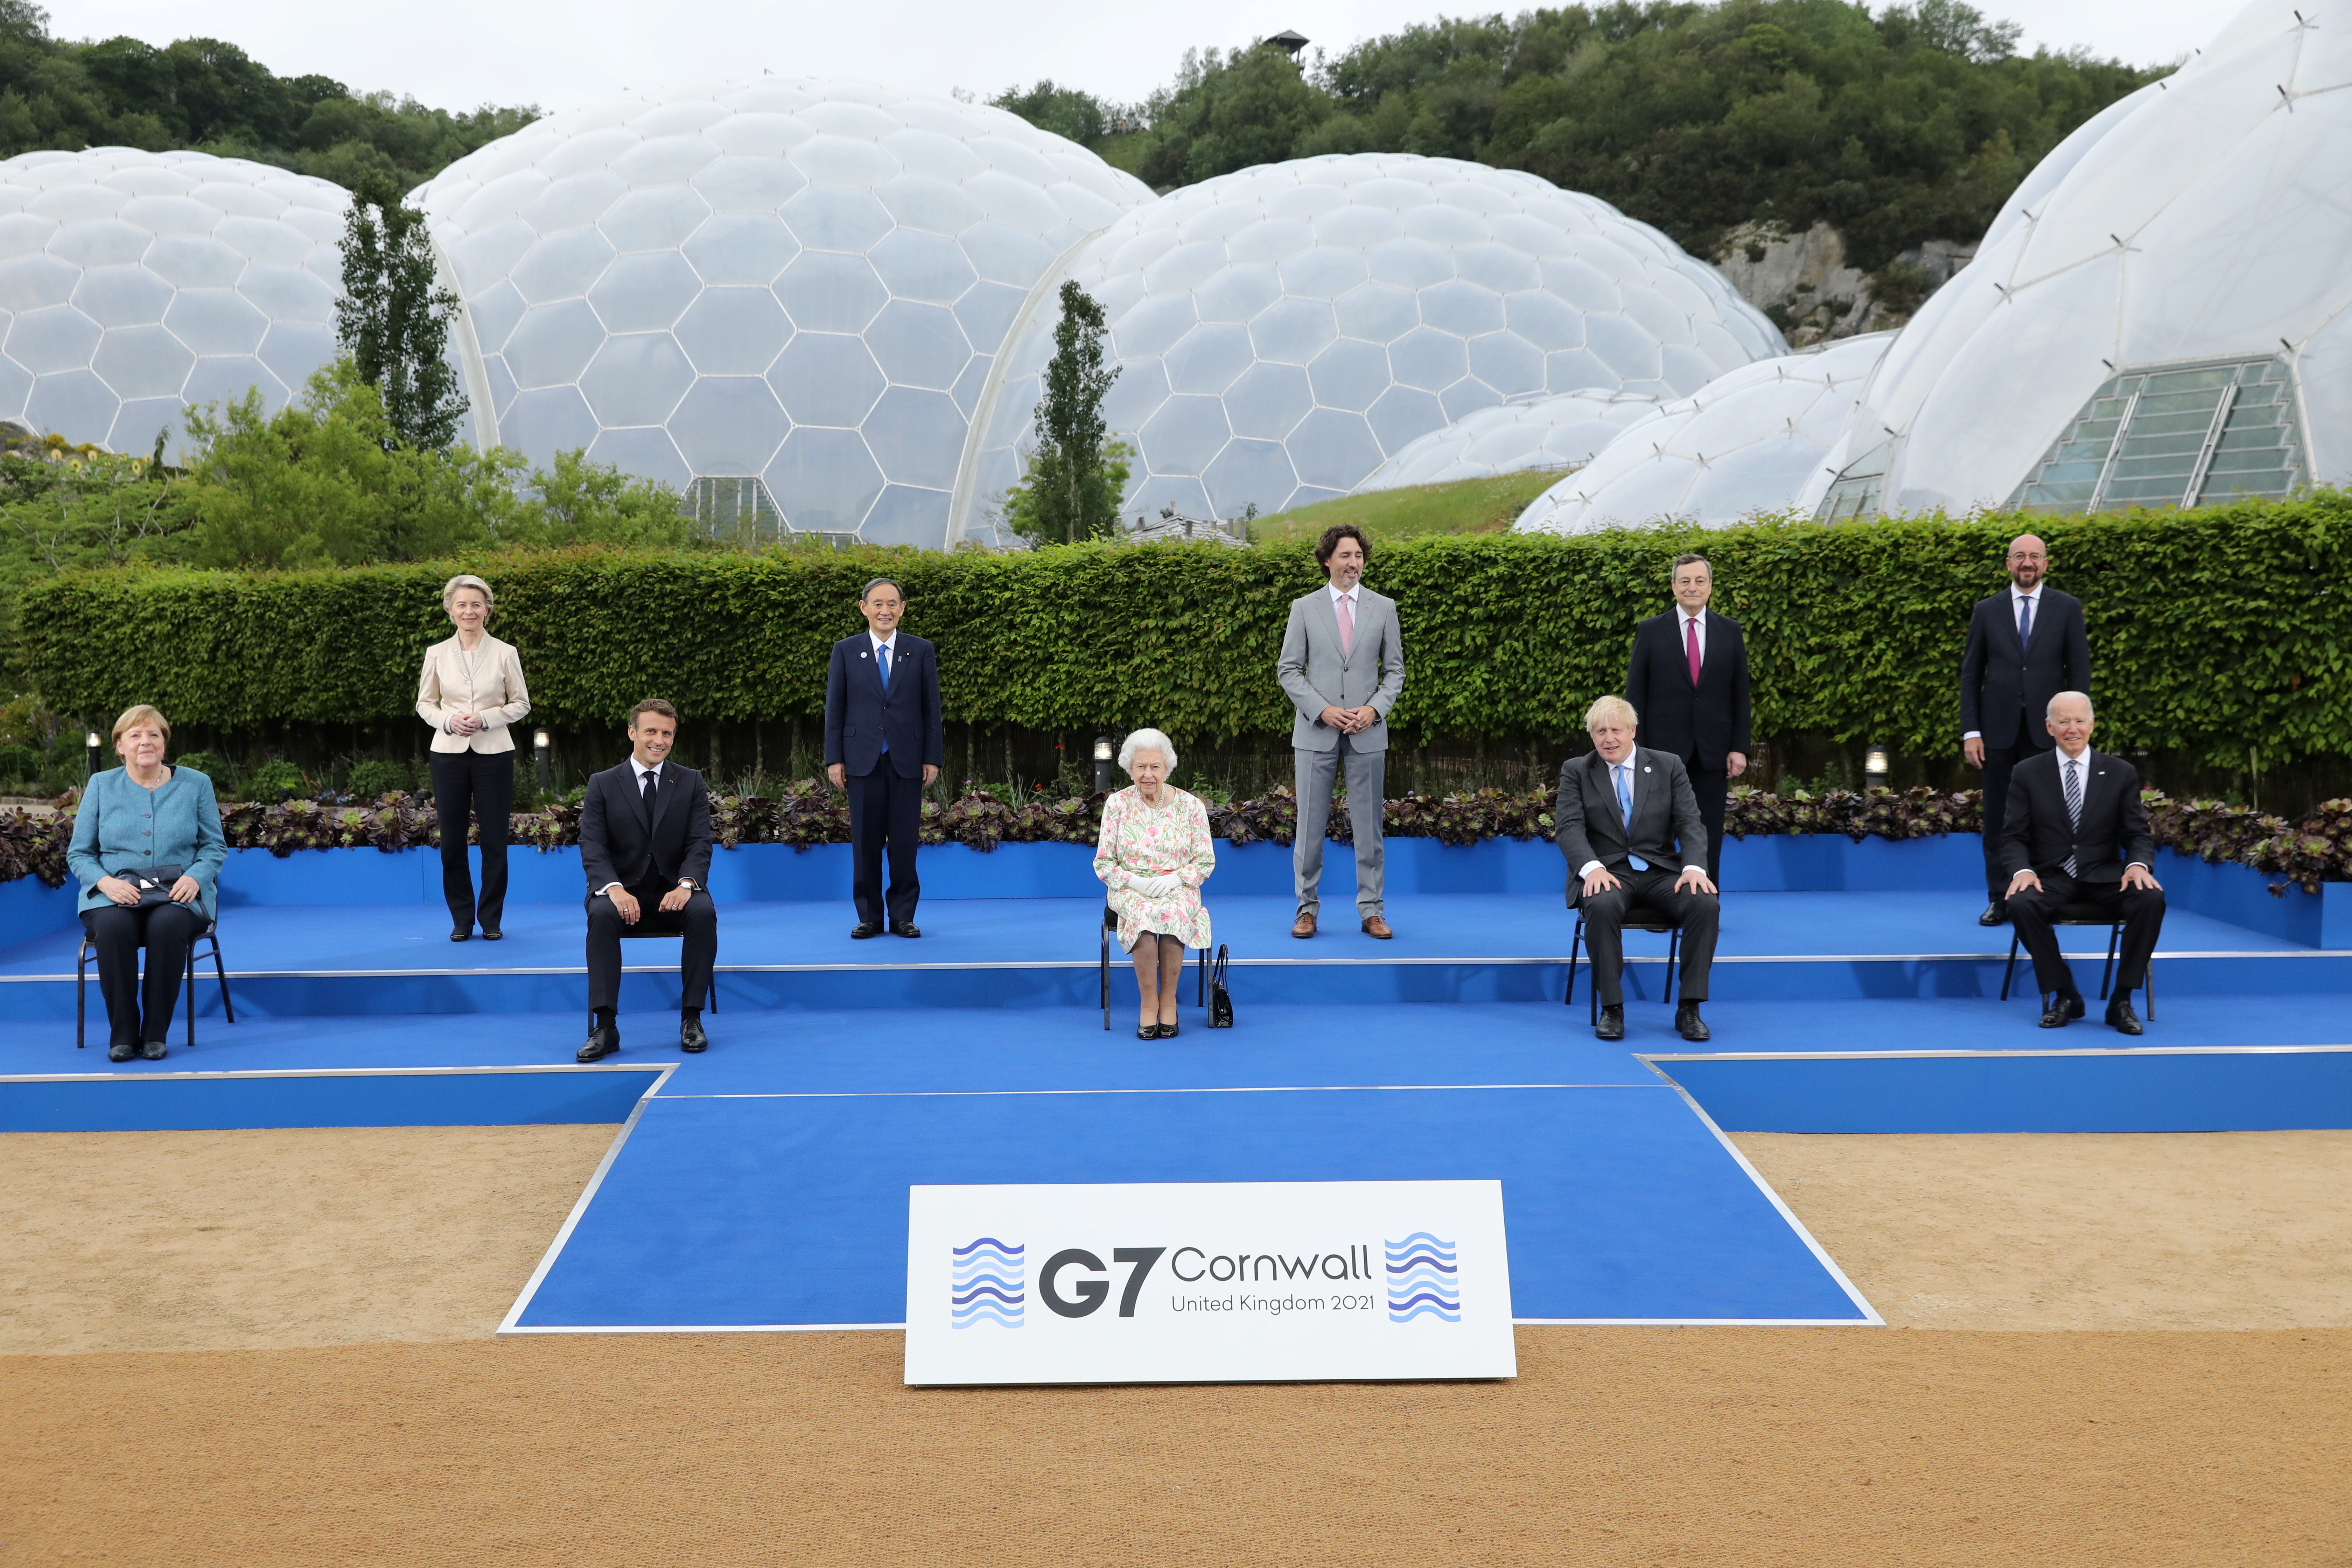 A picture of the G7 leaders with Queen Elizabeth II, including European Commission President Ursula von der Leyen, German Chancellor Angela Merkel, Japan's Prime Minister Yoshihide Suga, France's President Emmanuel Macron along with Britain's Queen Elizabeth, Canada's Prime Minister Justin Trudeau, Britain's Prime Minister Boris Johnson, Italy's Prime Minister Mario Draghi, U.S. President Joe Biden and European Council President Charles Michel